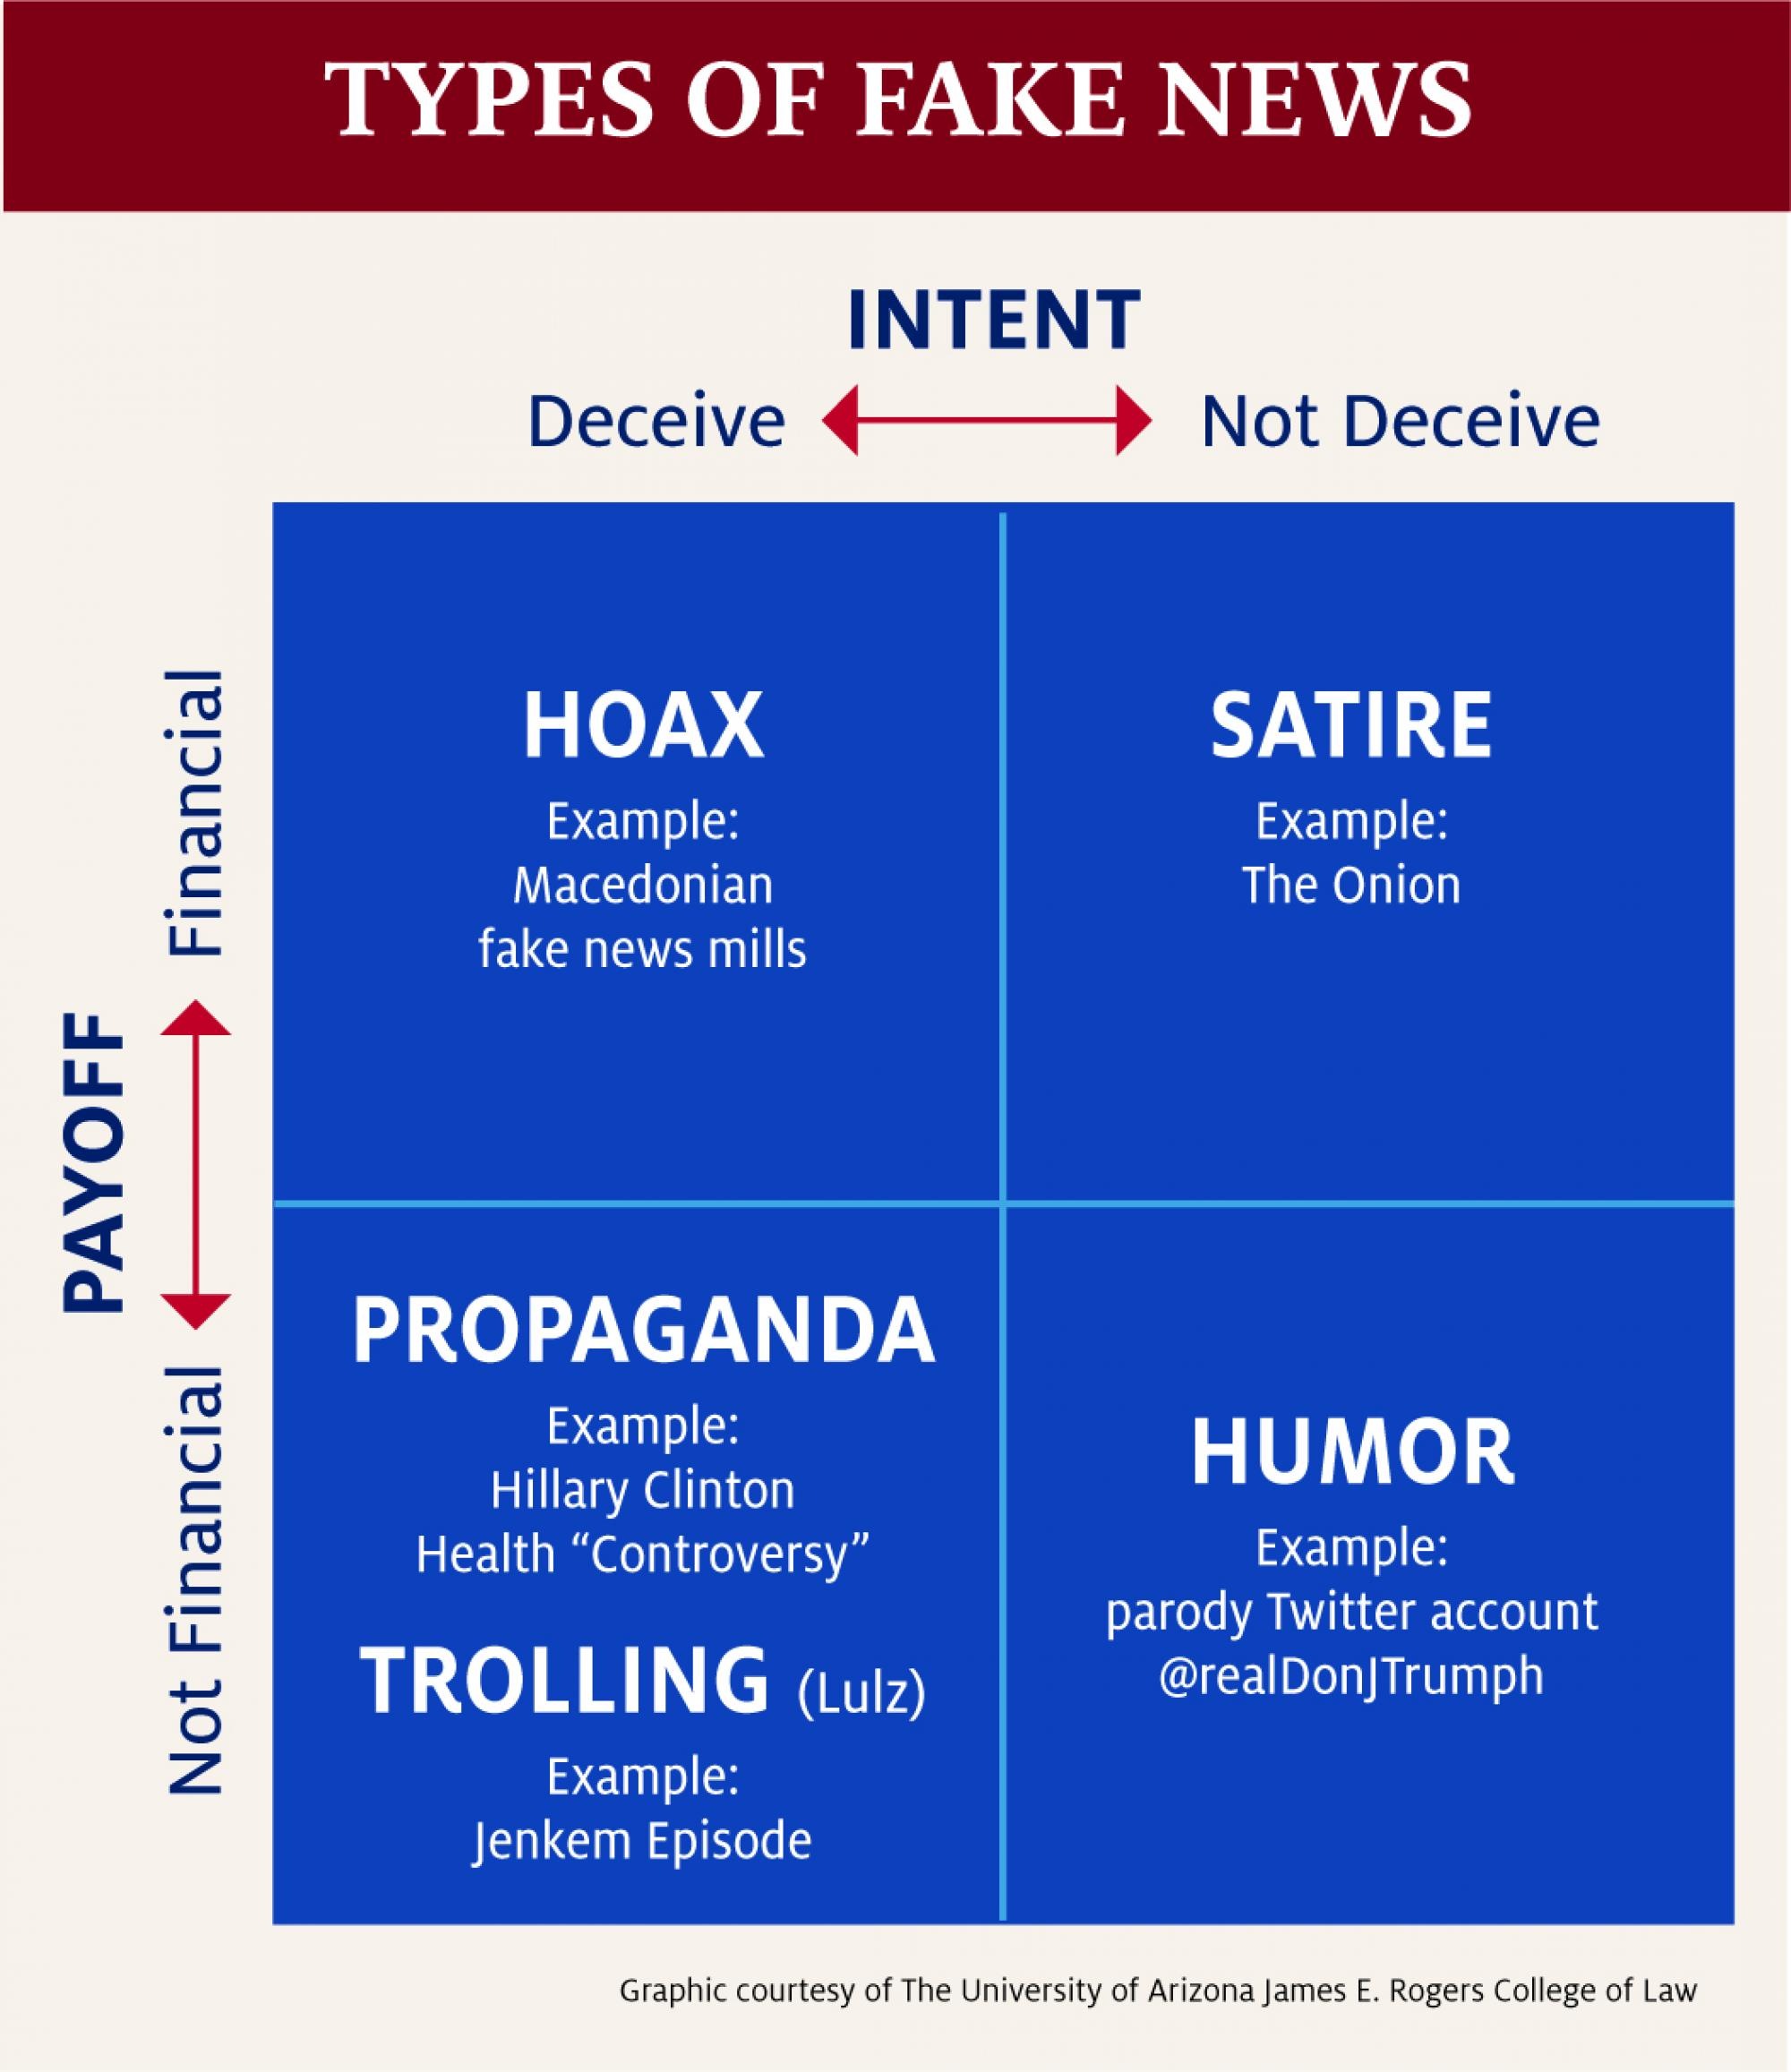 The report includes a matrix to organize the different types of fake news.